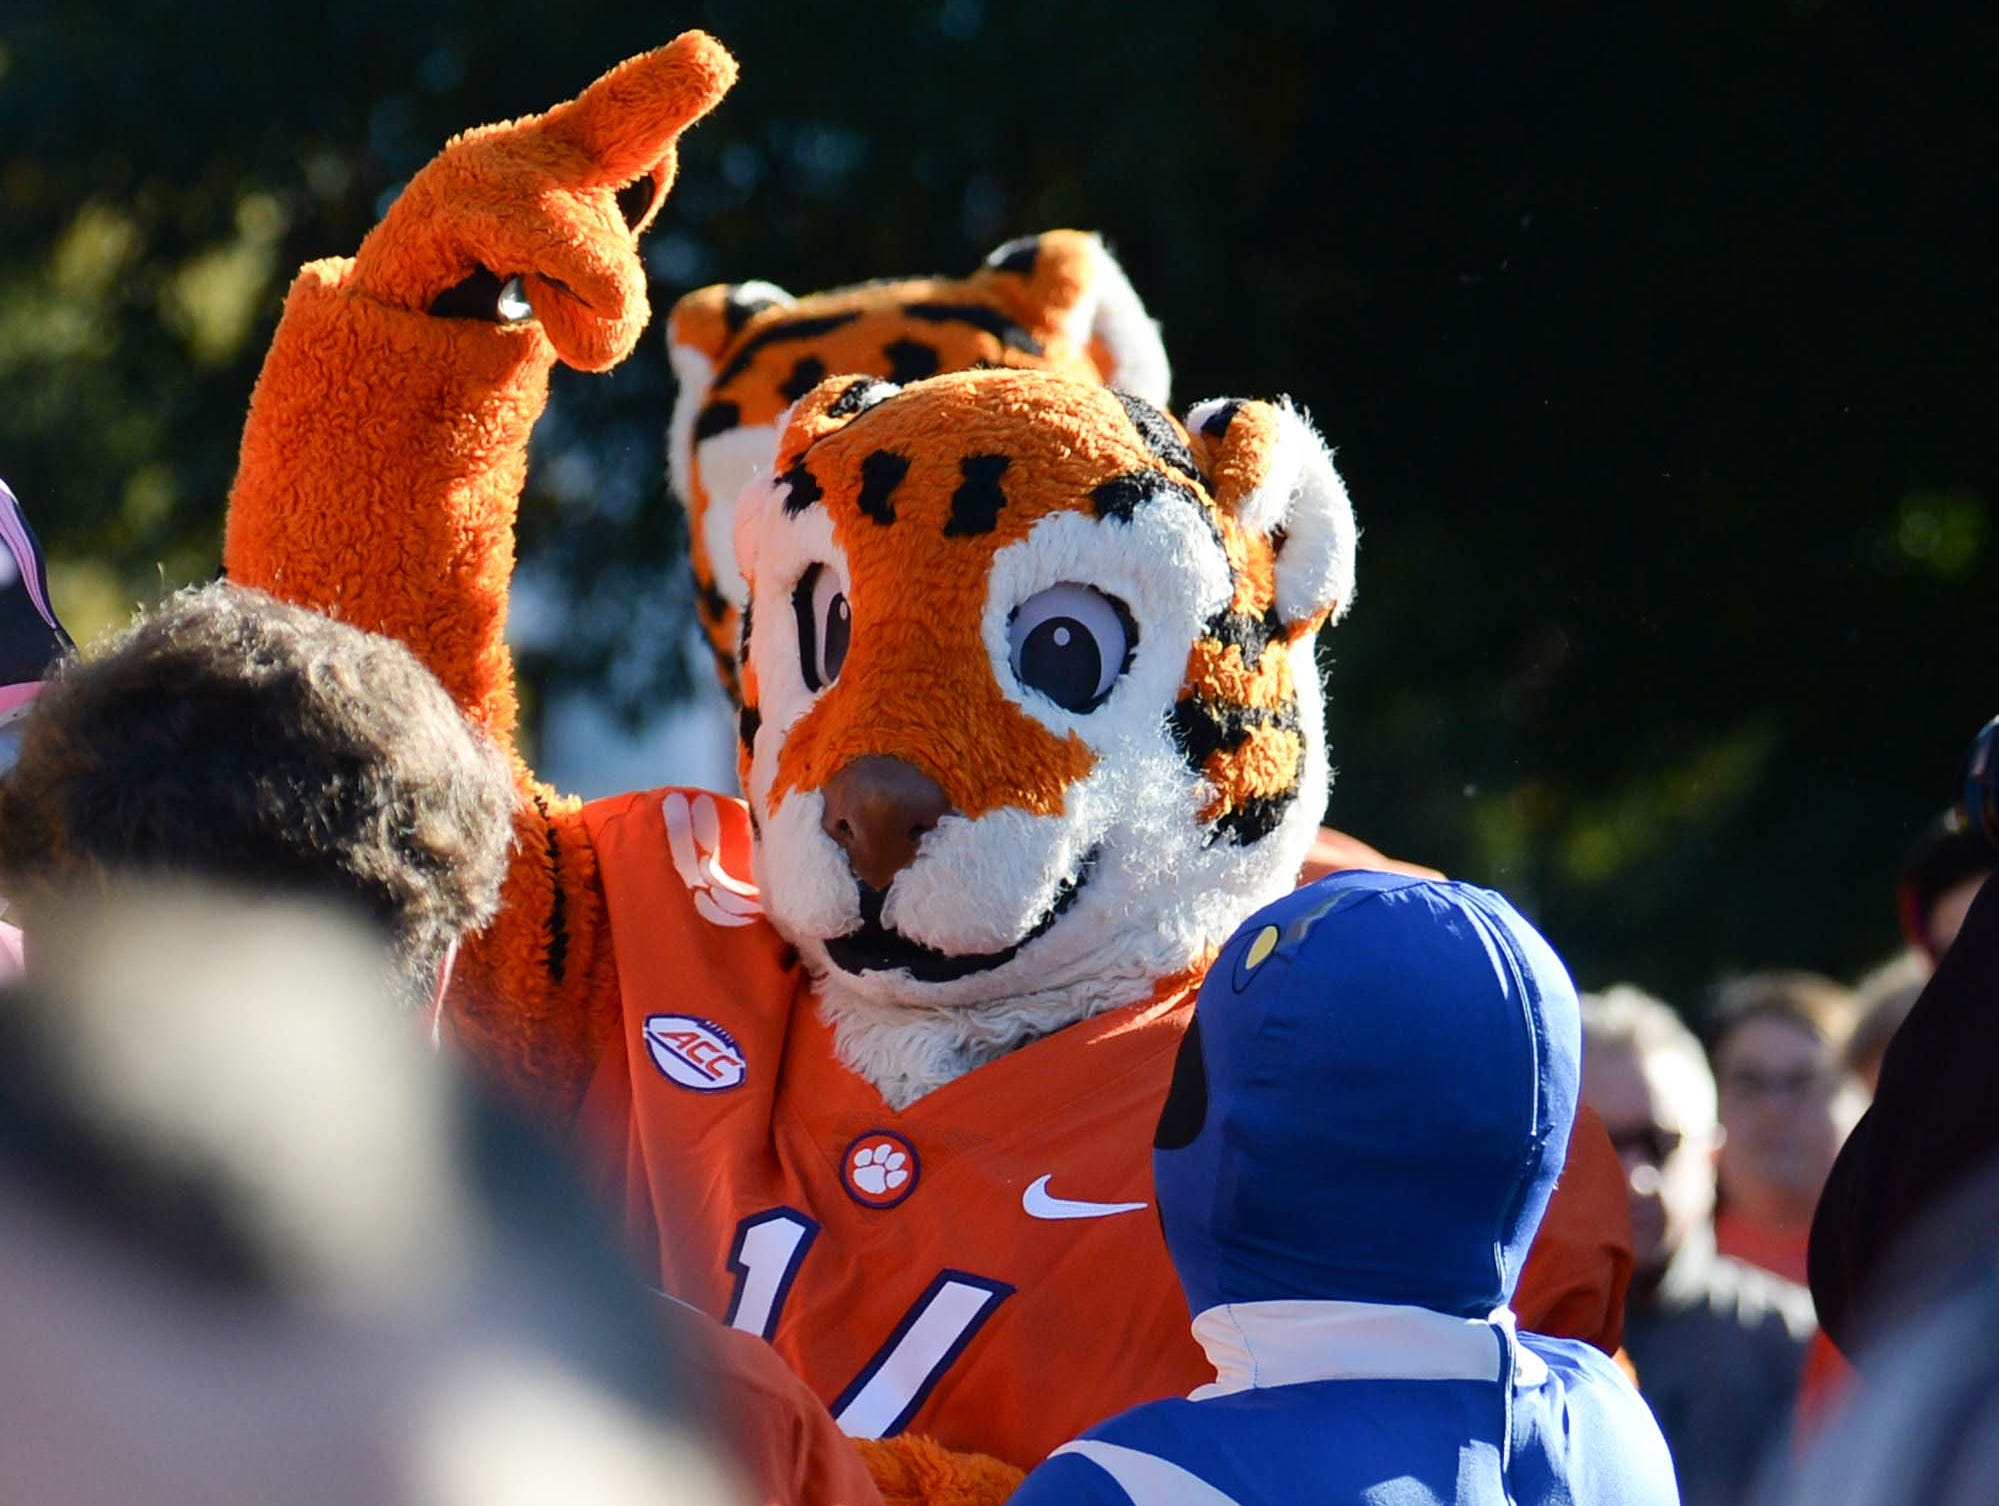 Clemson fans arrive early, setting up tailgate and watching Tiger Walk near changing colors of fall before the game in Memorial Stadium on Saturday, November 3, 2018.